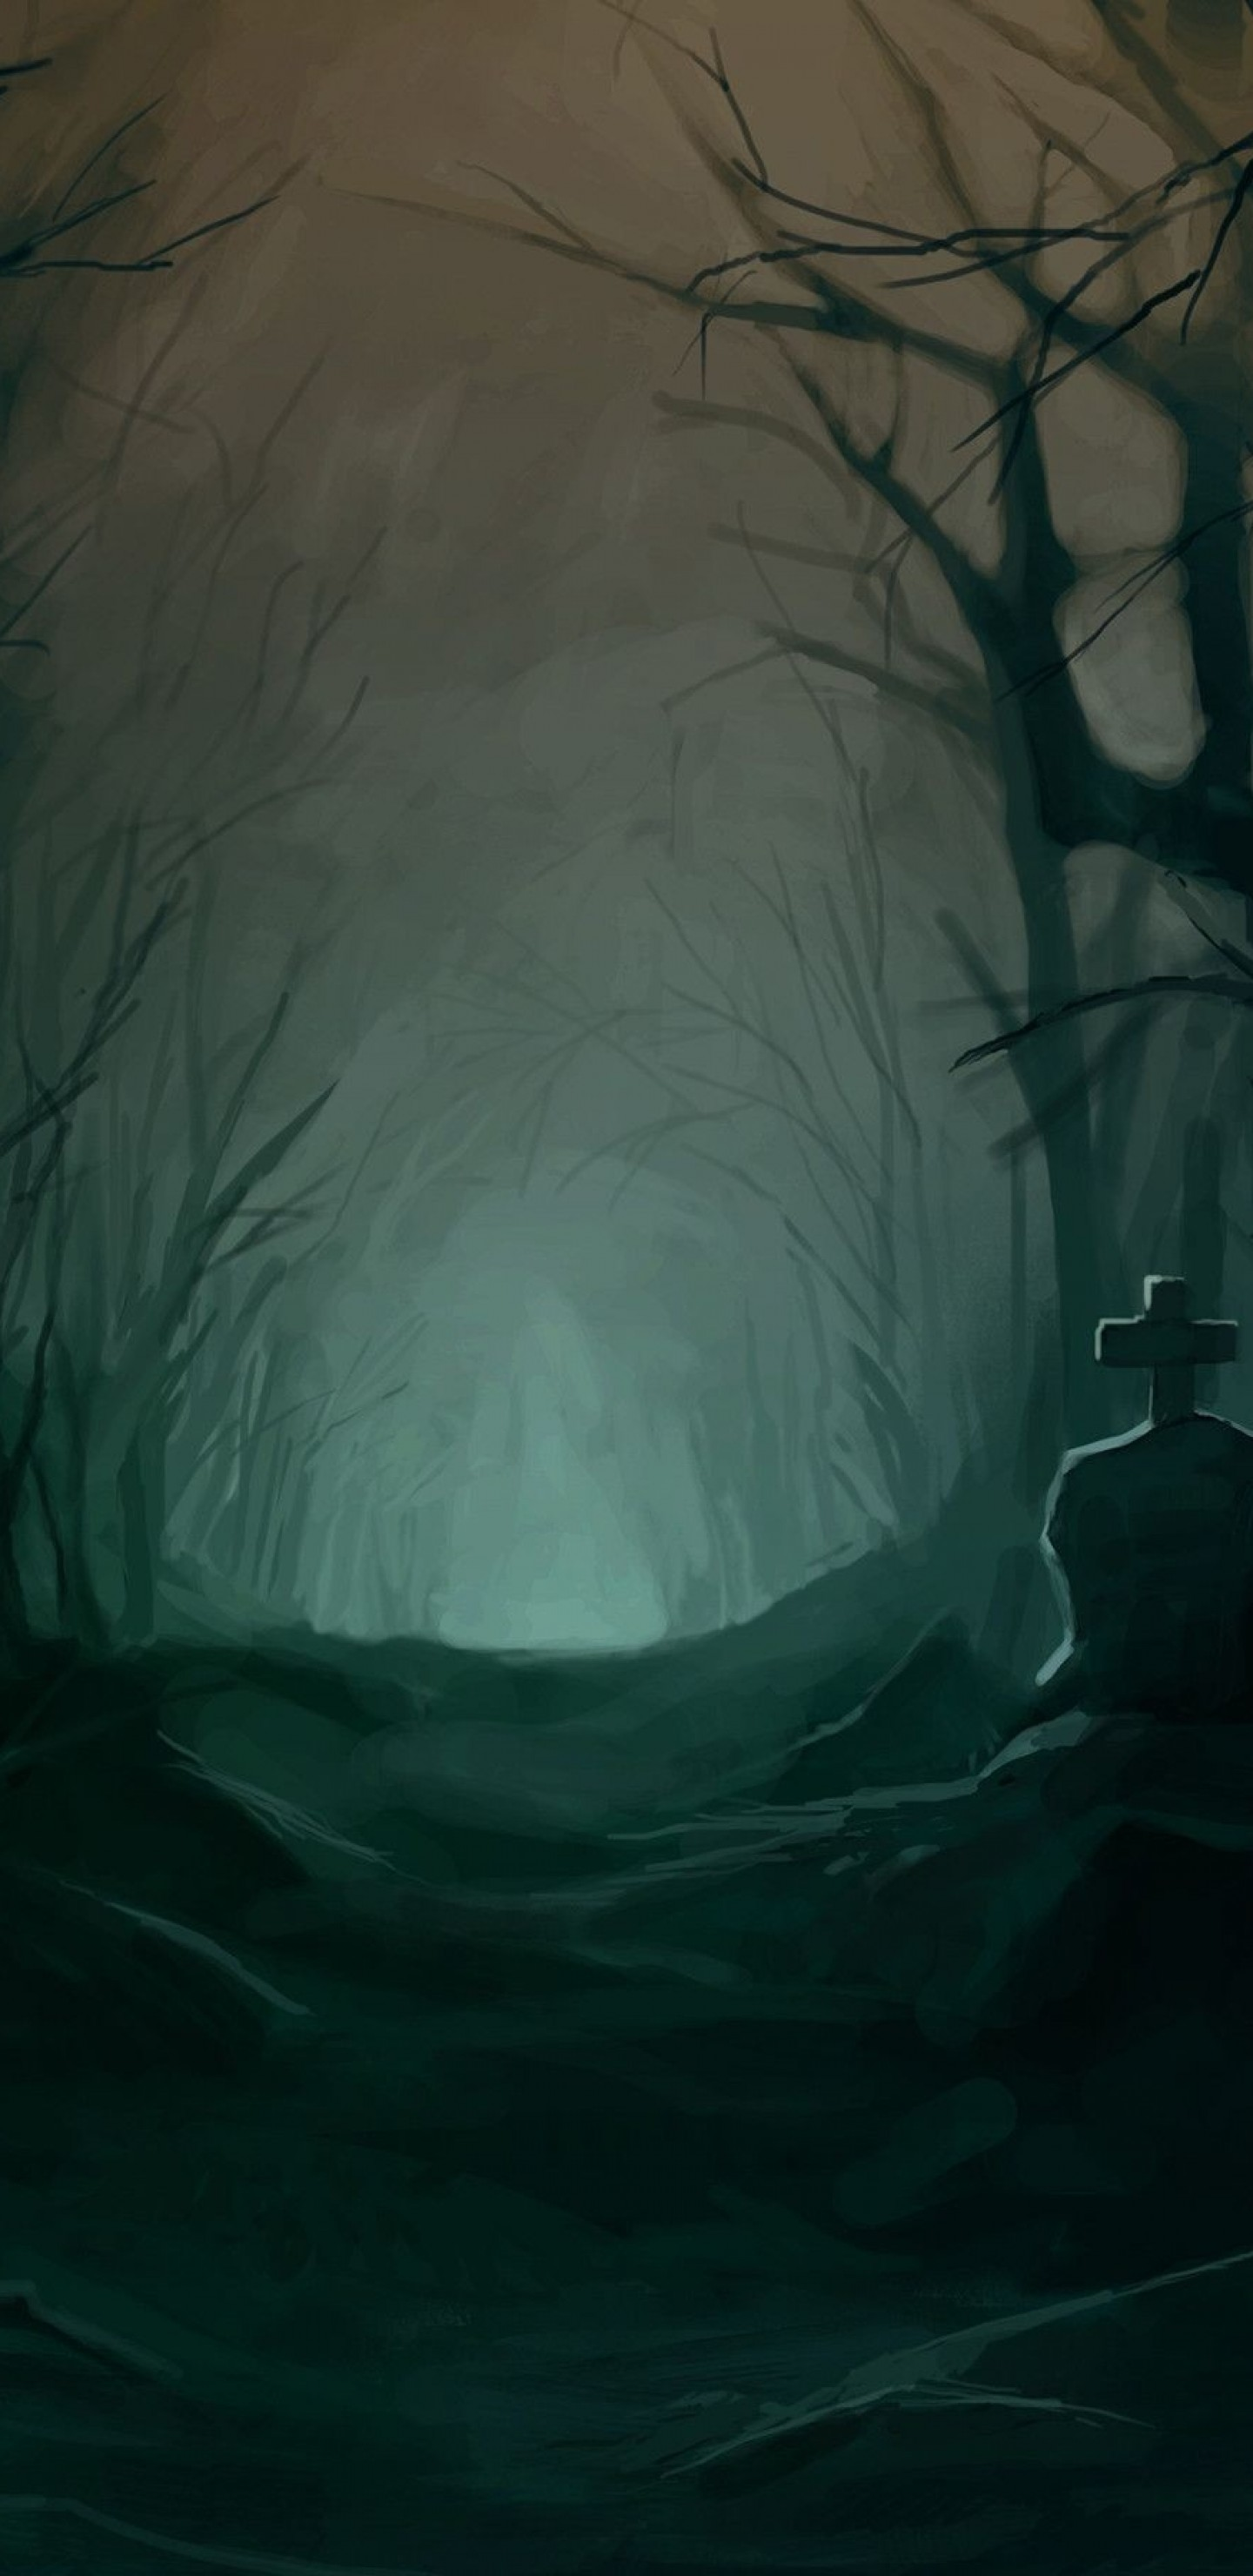 dark scary forest wallpaper 64 images